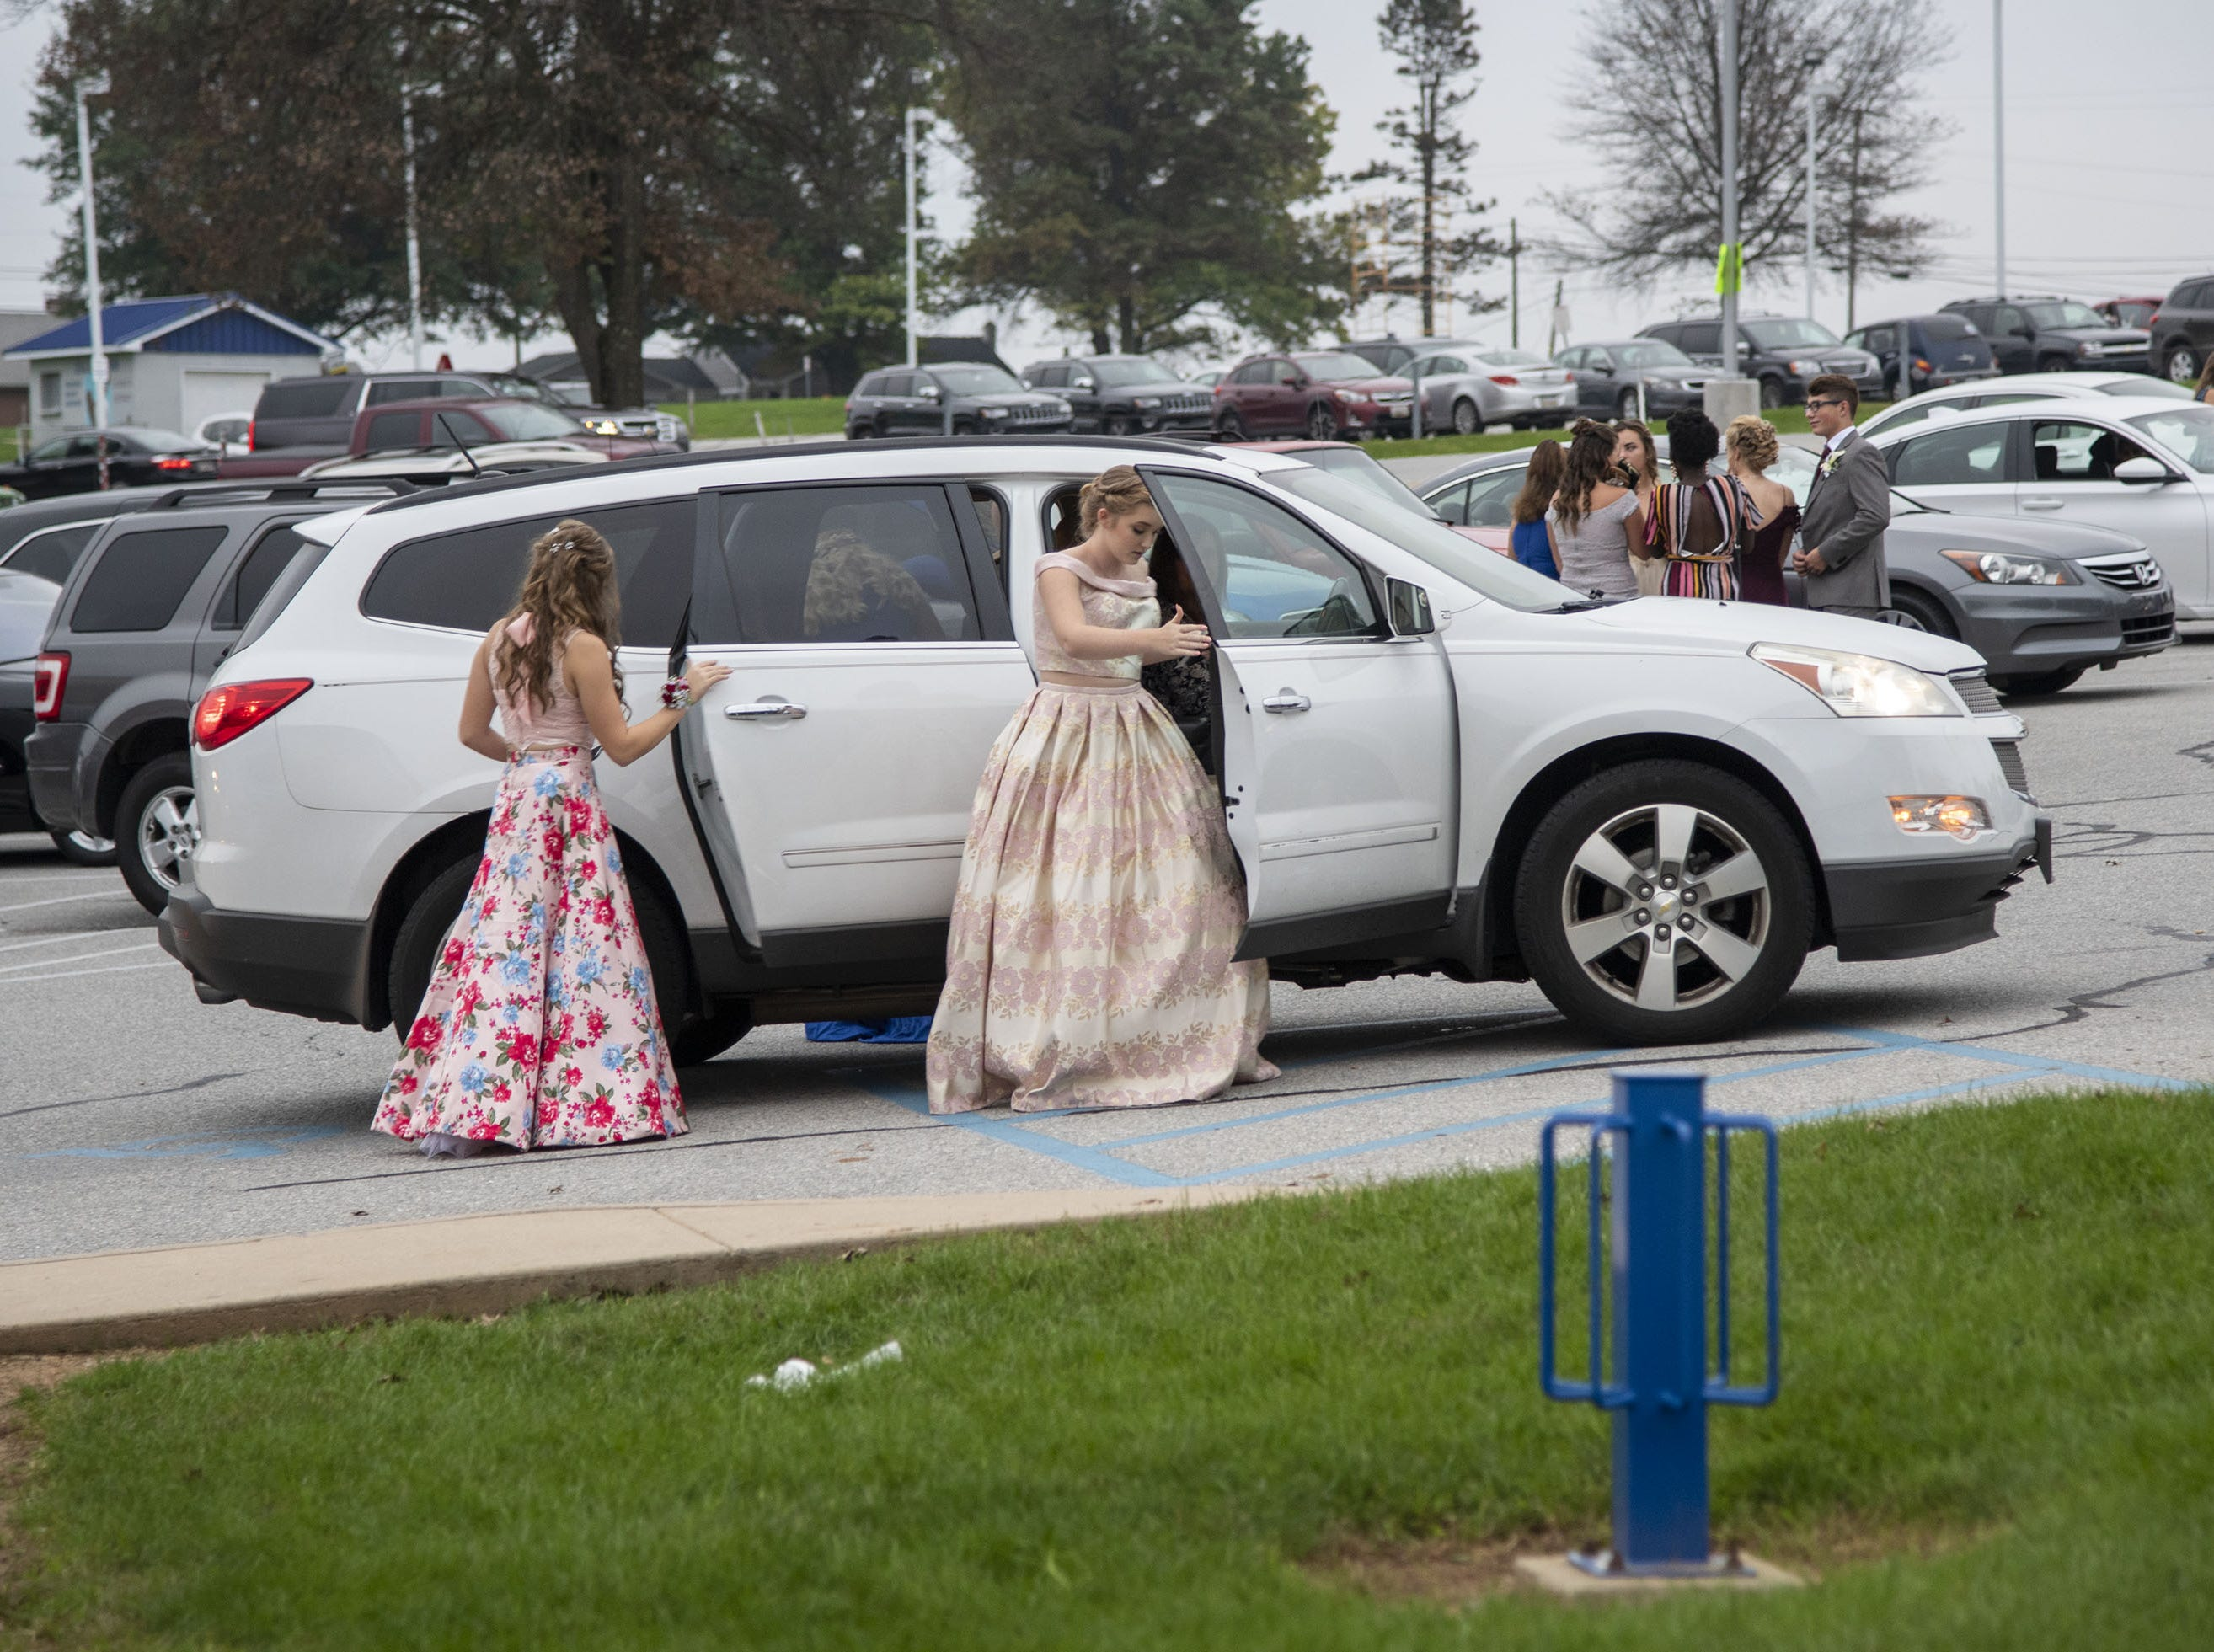 Students arrive to the 2018 Dallastown Area High School homecoming dance on Saturday, October 06, 2018.